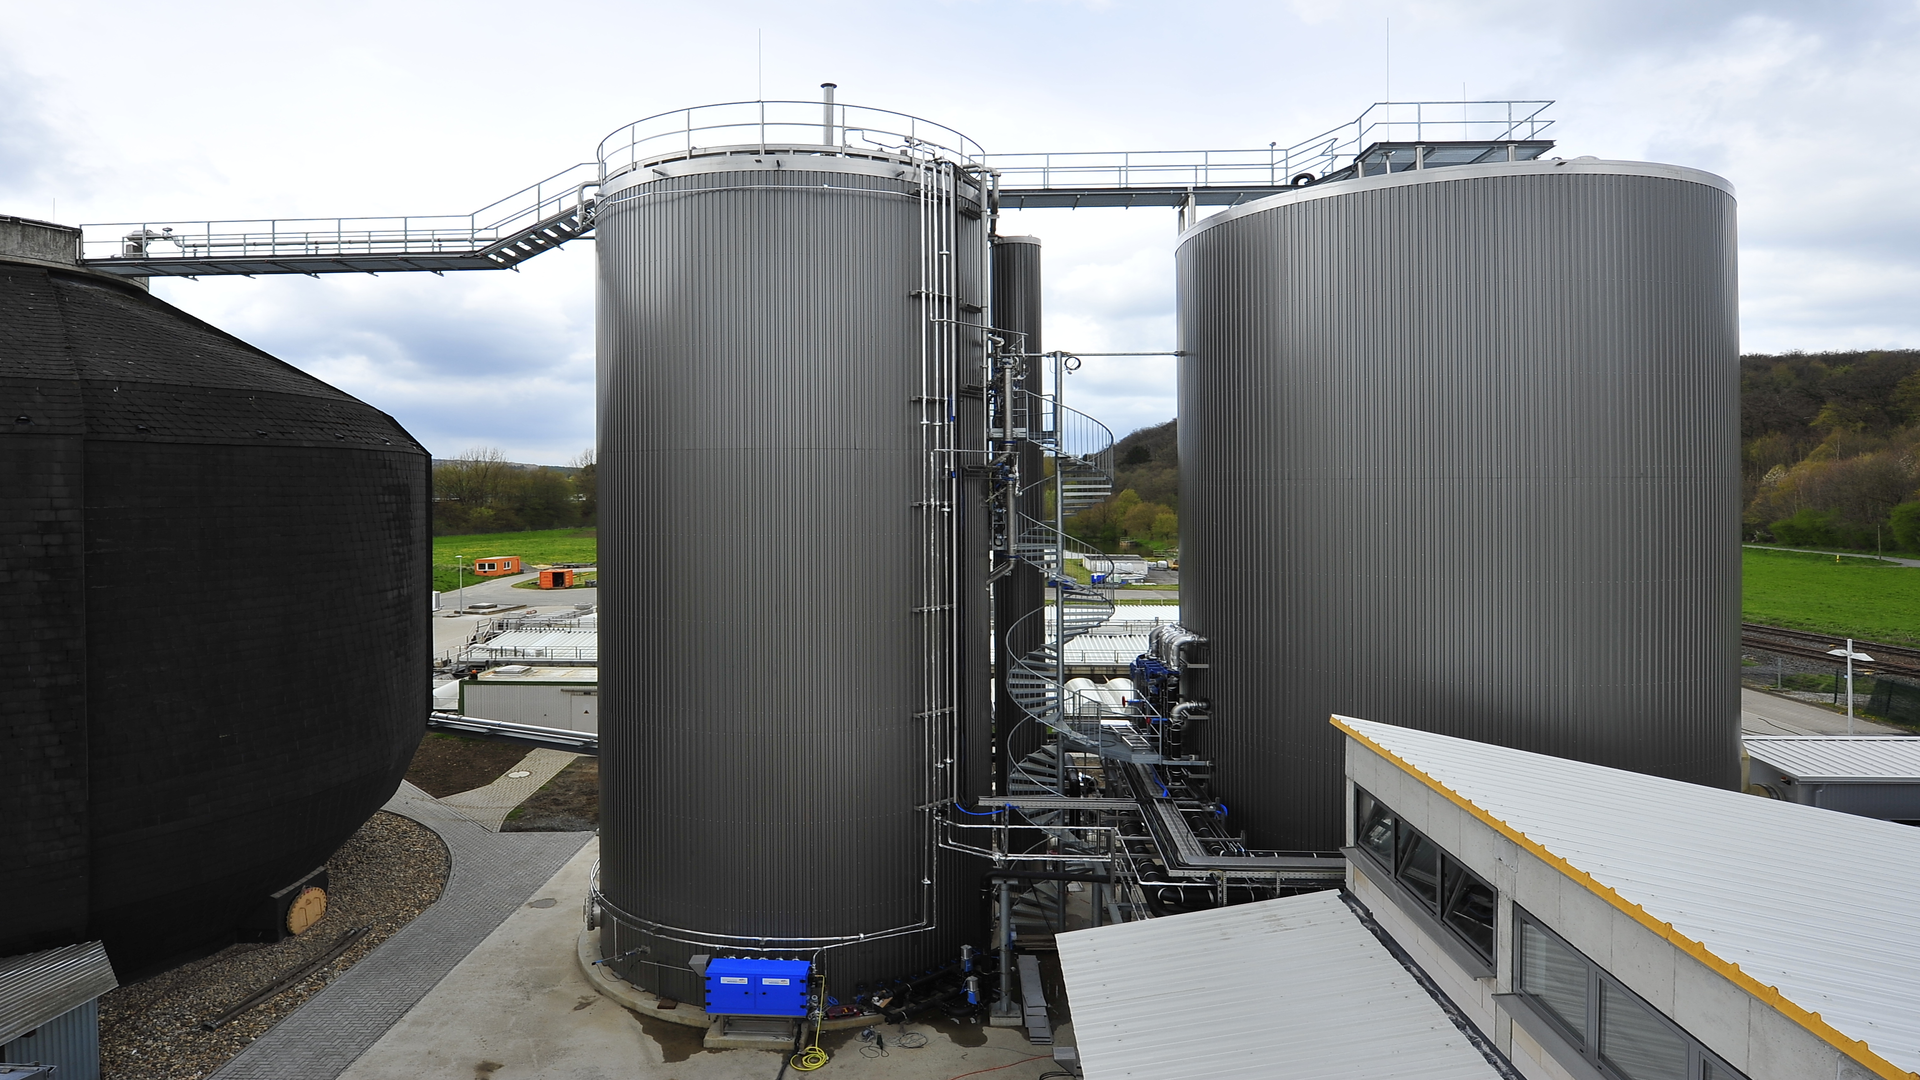 Gallery image 2 - Brauerei biological wastewater treatment with biogas production